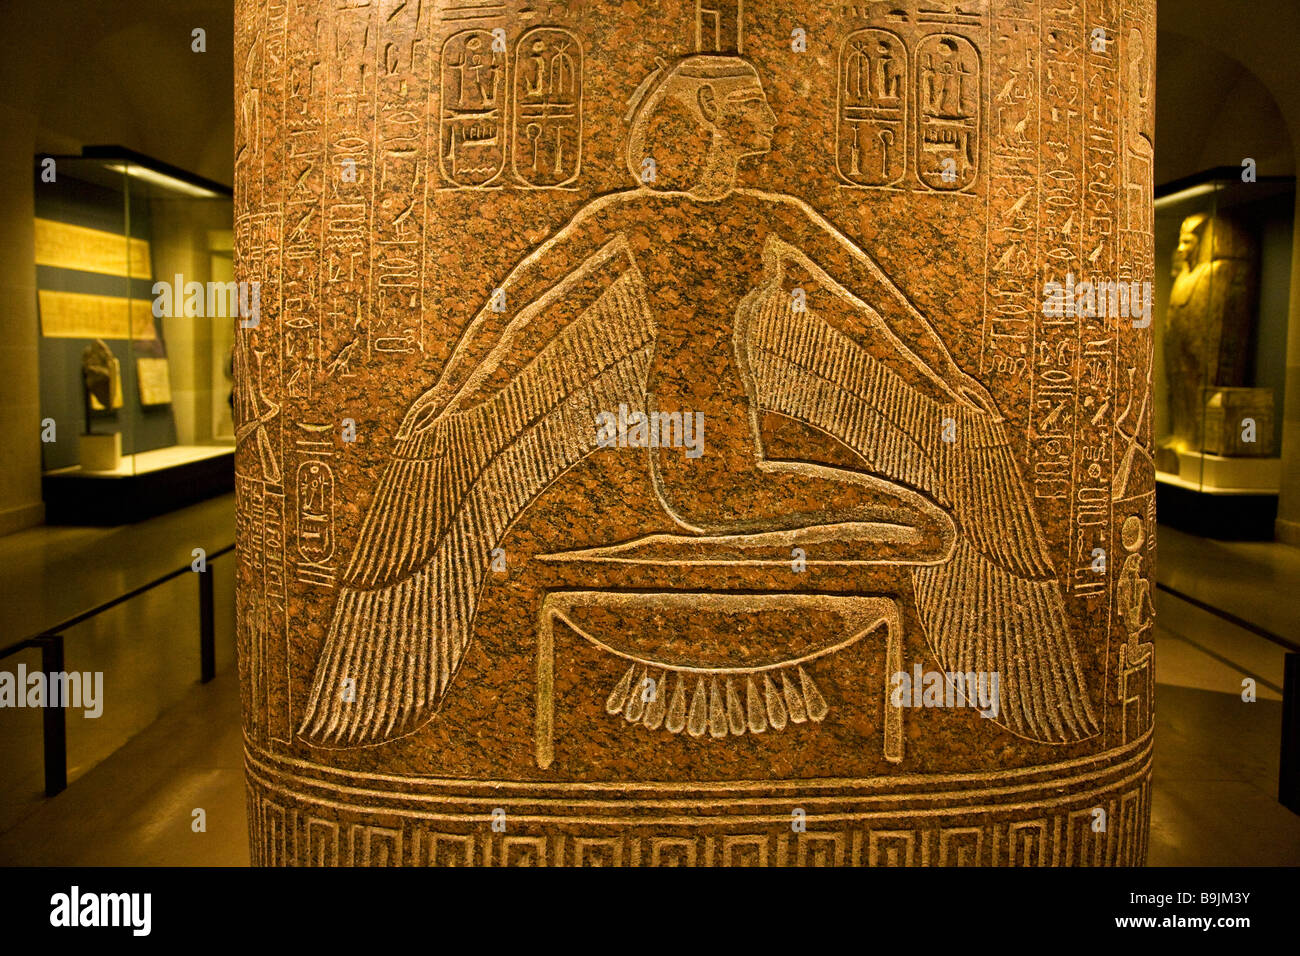 Goddess Isis spreads wings on polished granite sarcophagus of Ramses III Musee du Louvre Museum Paris France Europe - Stock Image